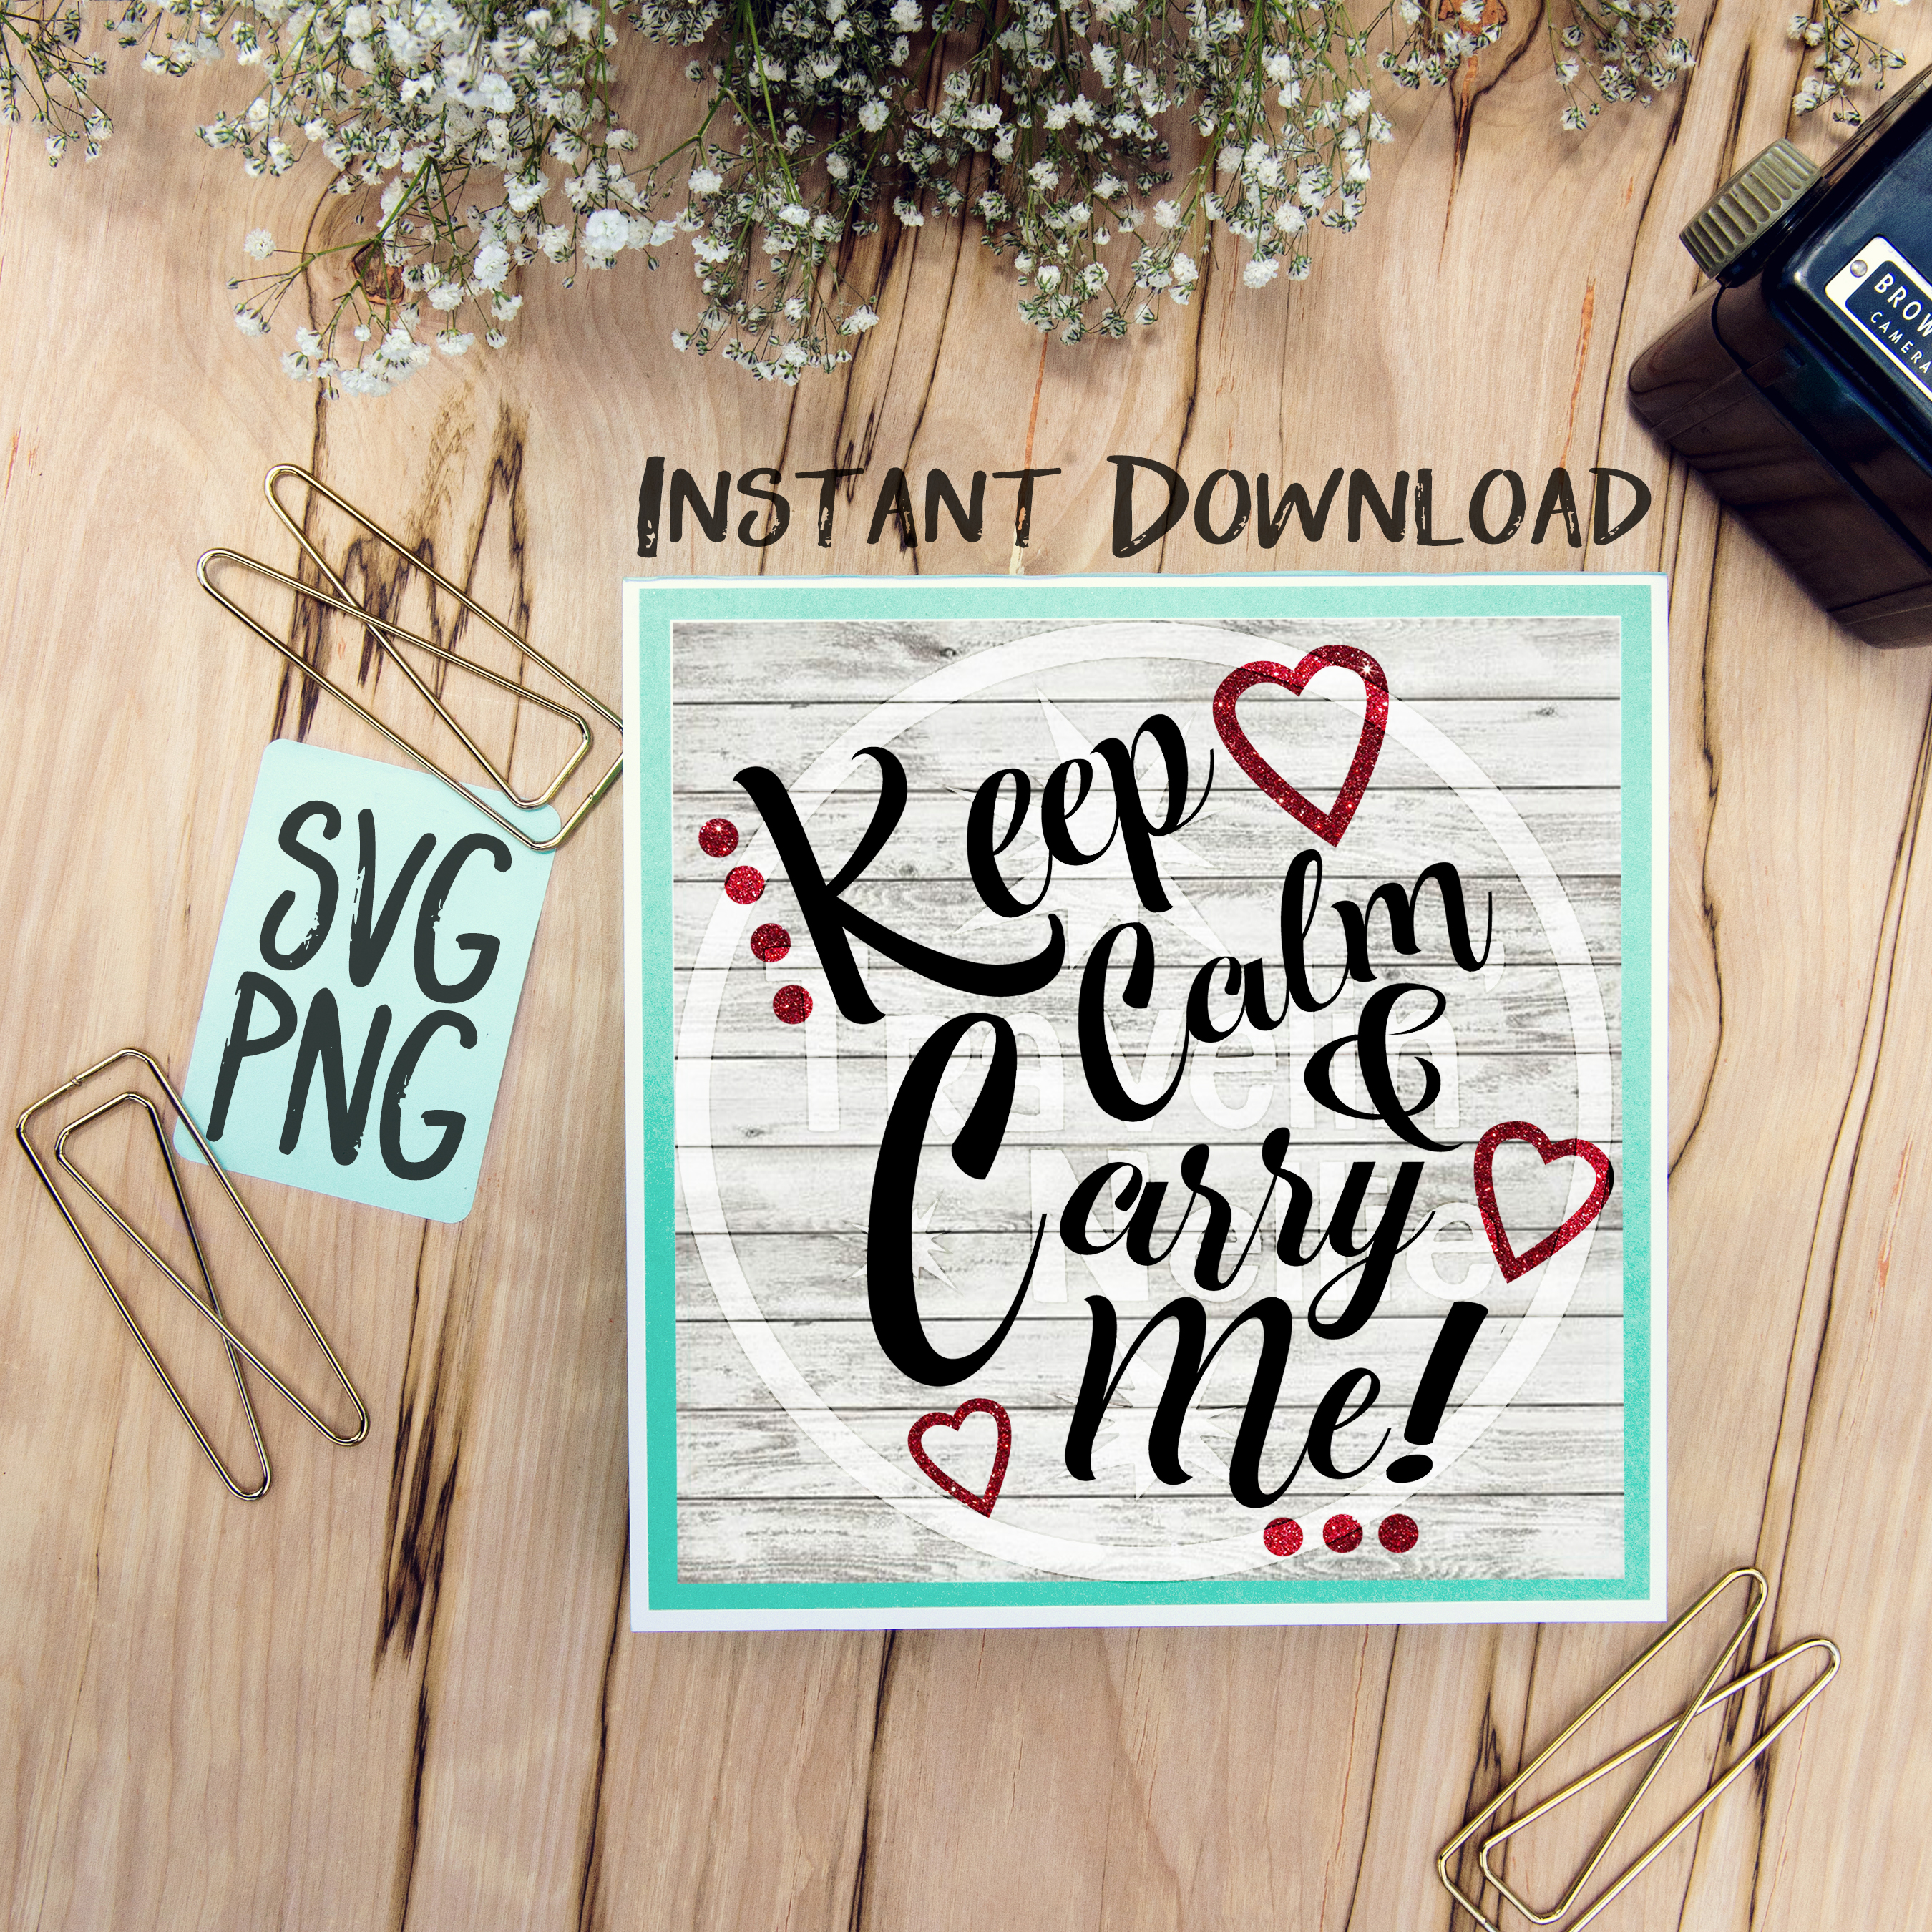 Keep Calm & Carry Me SVG Image Design for Vinyl Cutters Print DIY Shirt Design Brother Cricut Cameo Baby Child Kid Funny example image 1